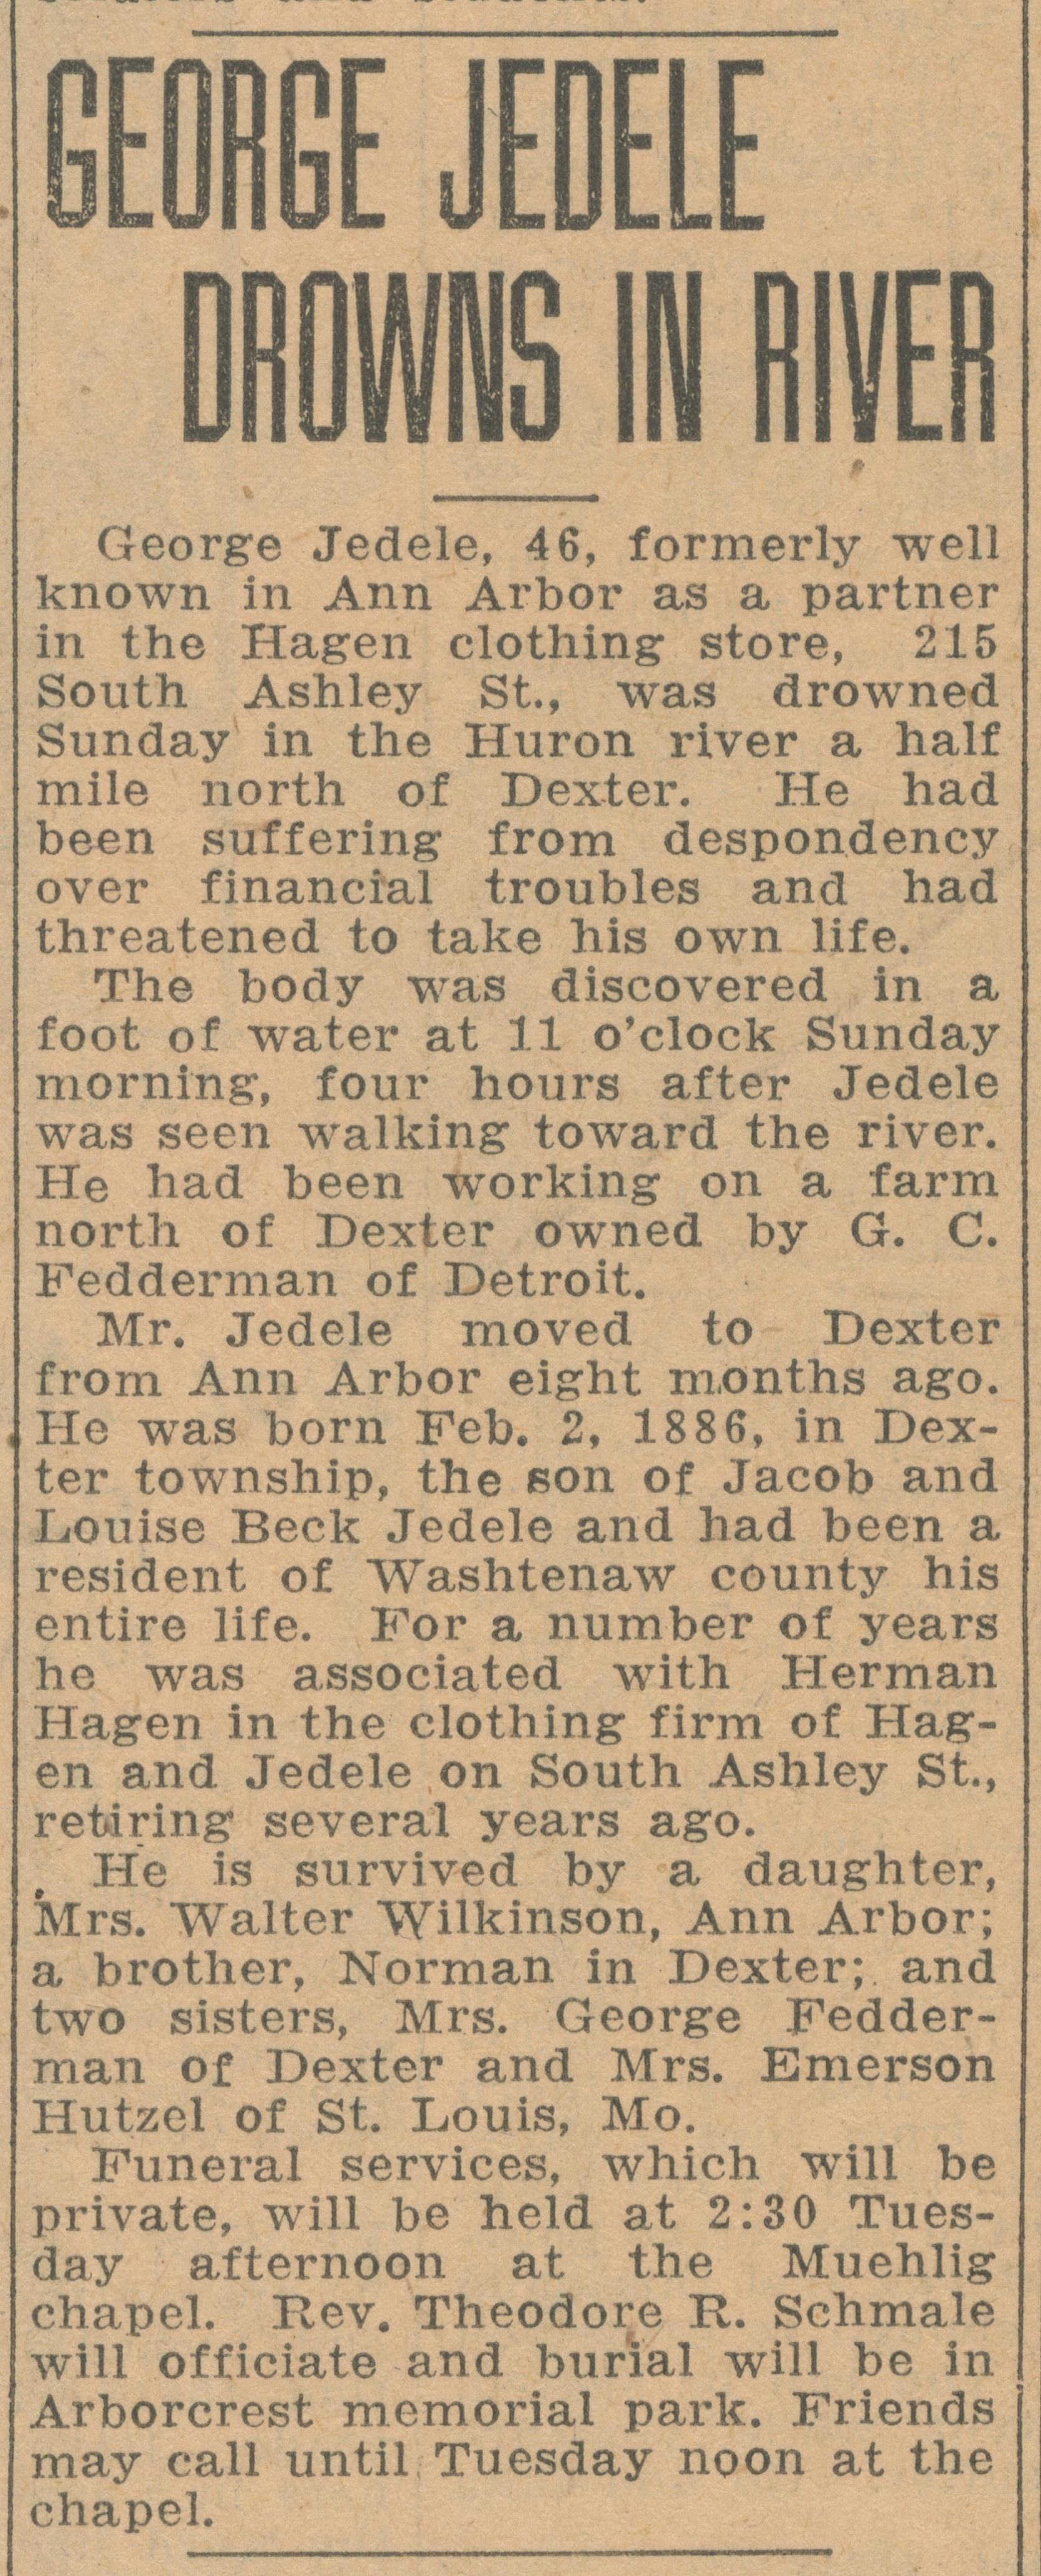 George Jedele Drowns In River image